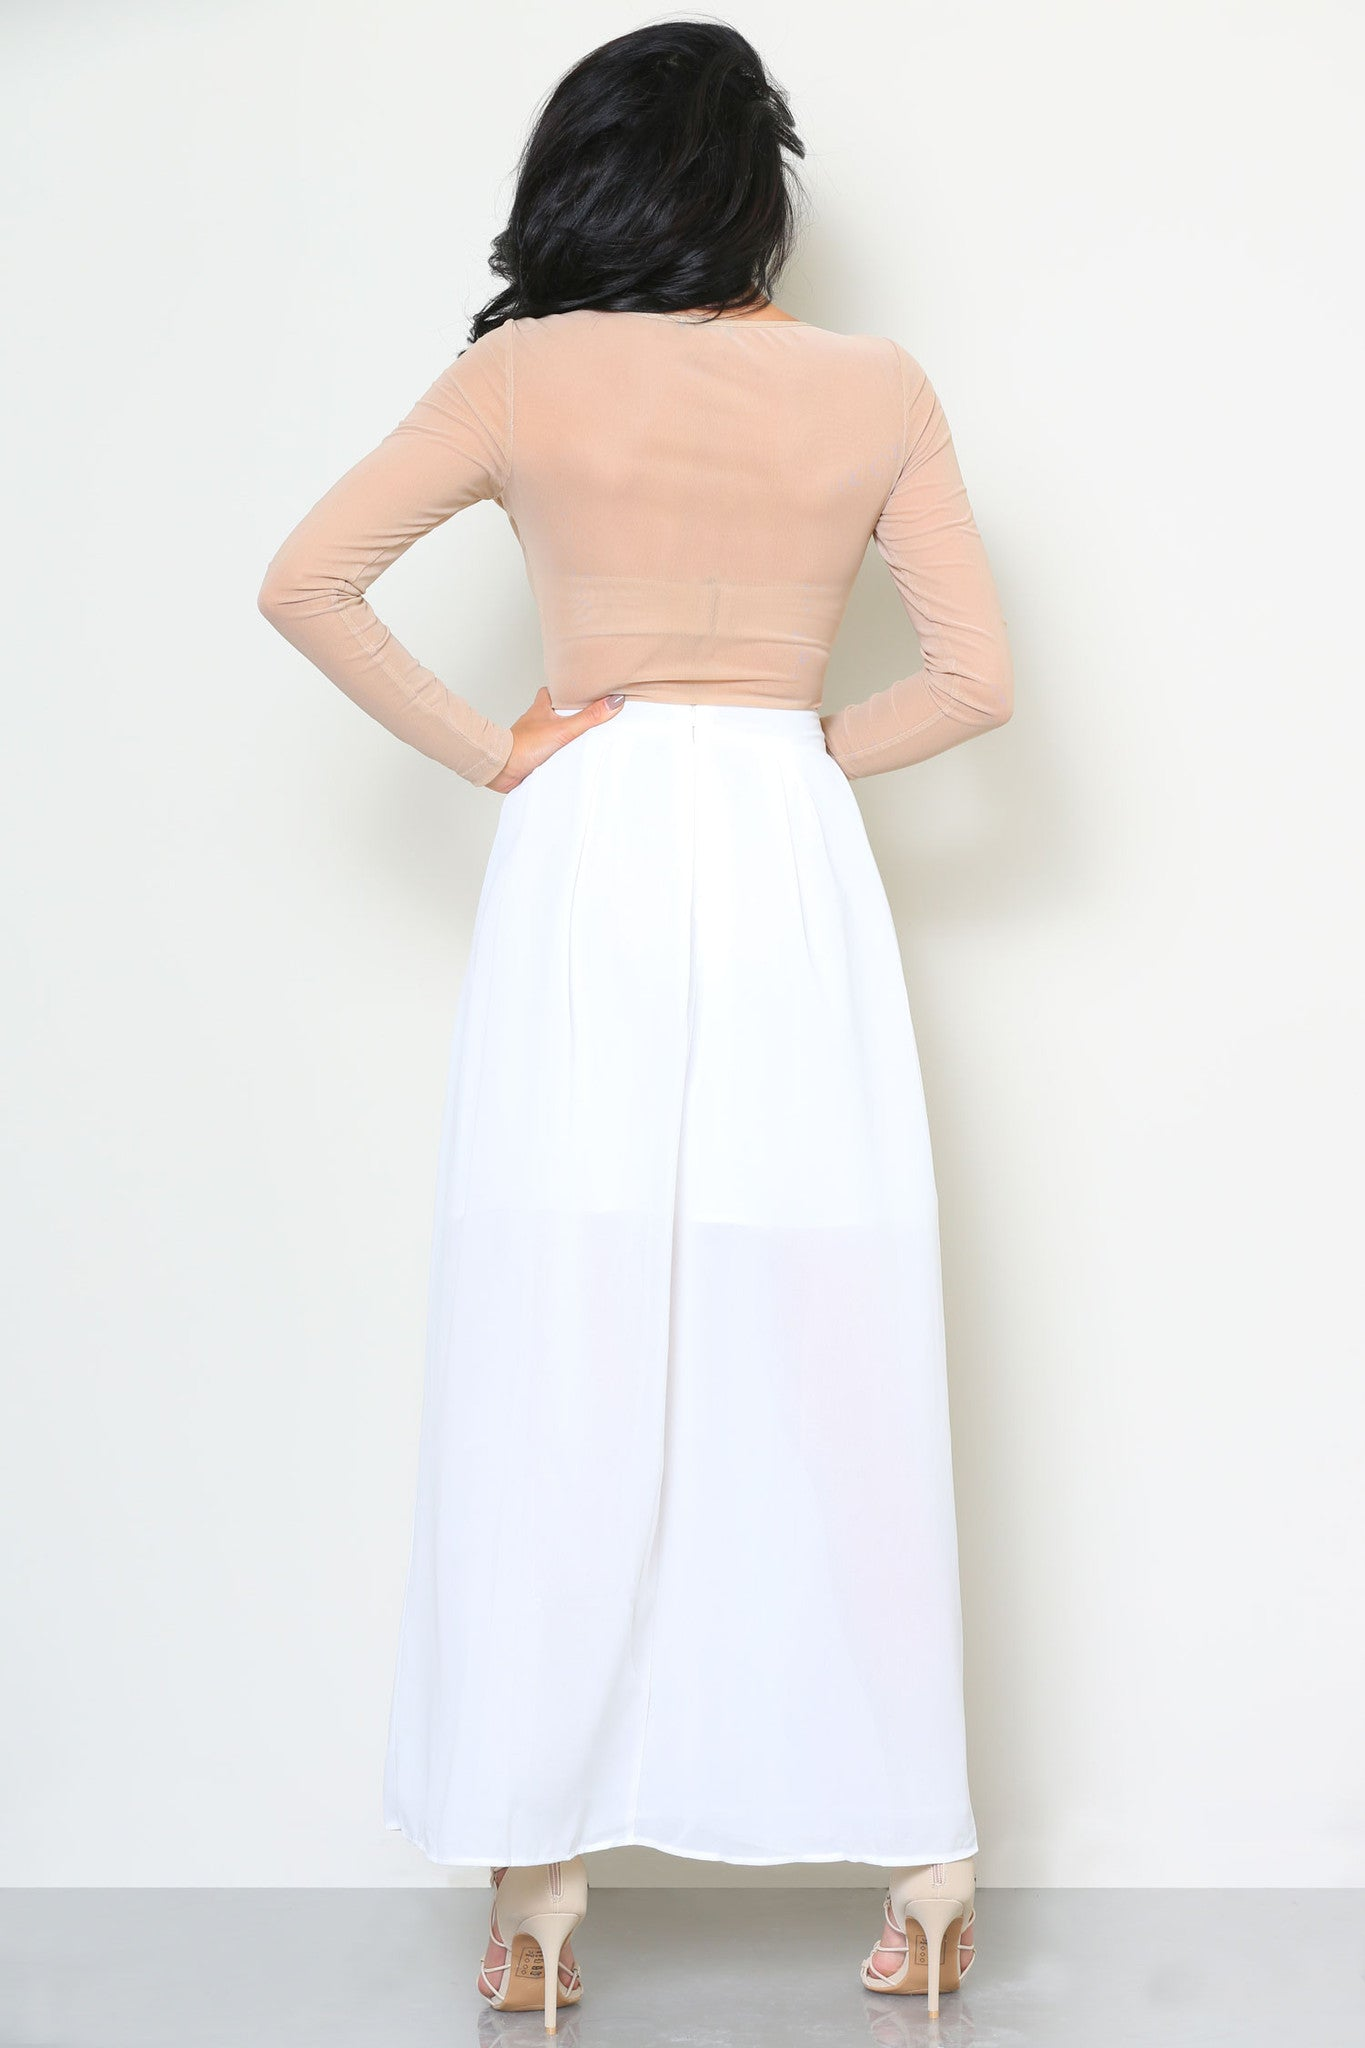 ADALINE SKIRT - Glam Envy - 3